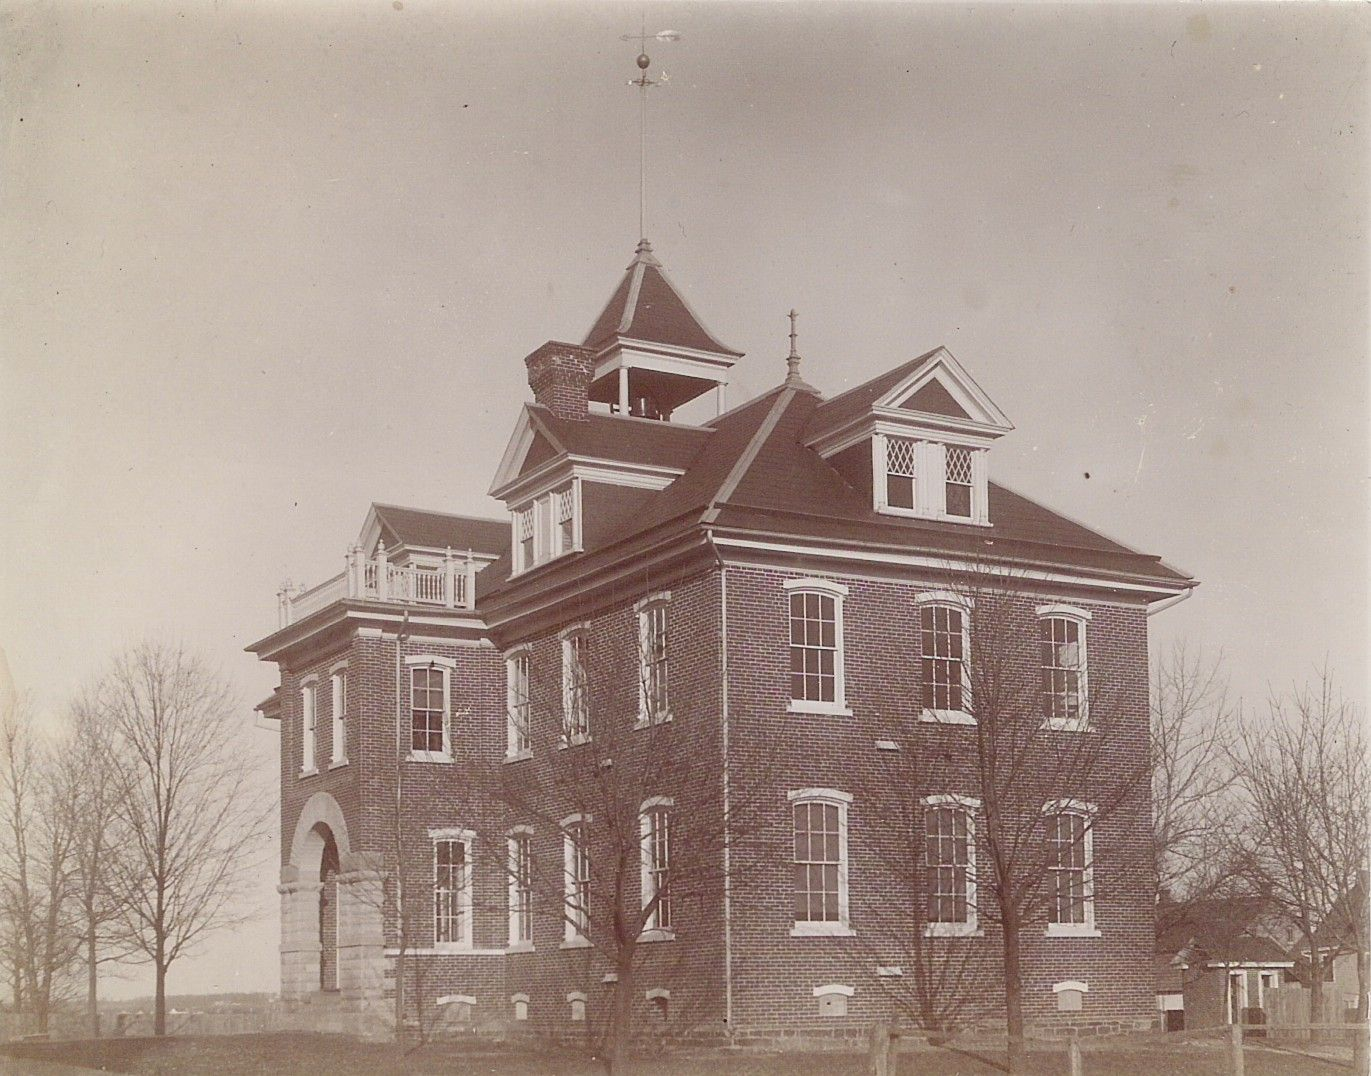 We See A Photo Of The Sellersville Public School Building Taken By Joseph W Daub Of Sellersville Ci Elementary School Students Public School School Building